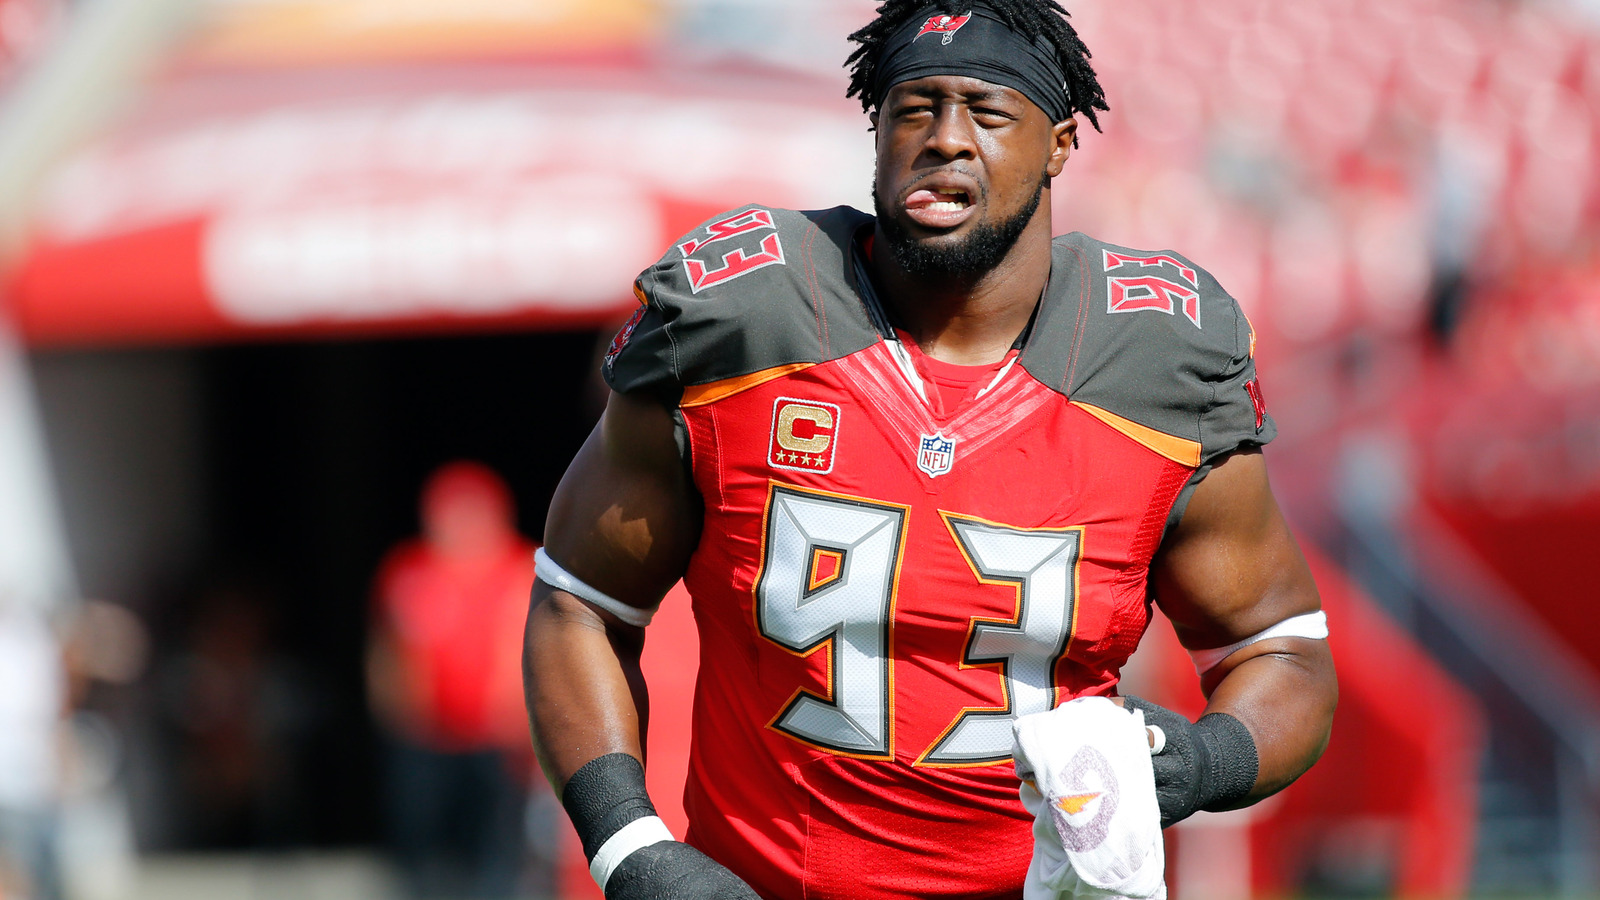 Gerald McCoy seems to take offense to Ronde Barber slight